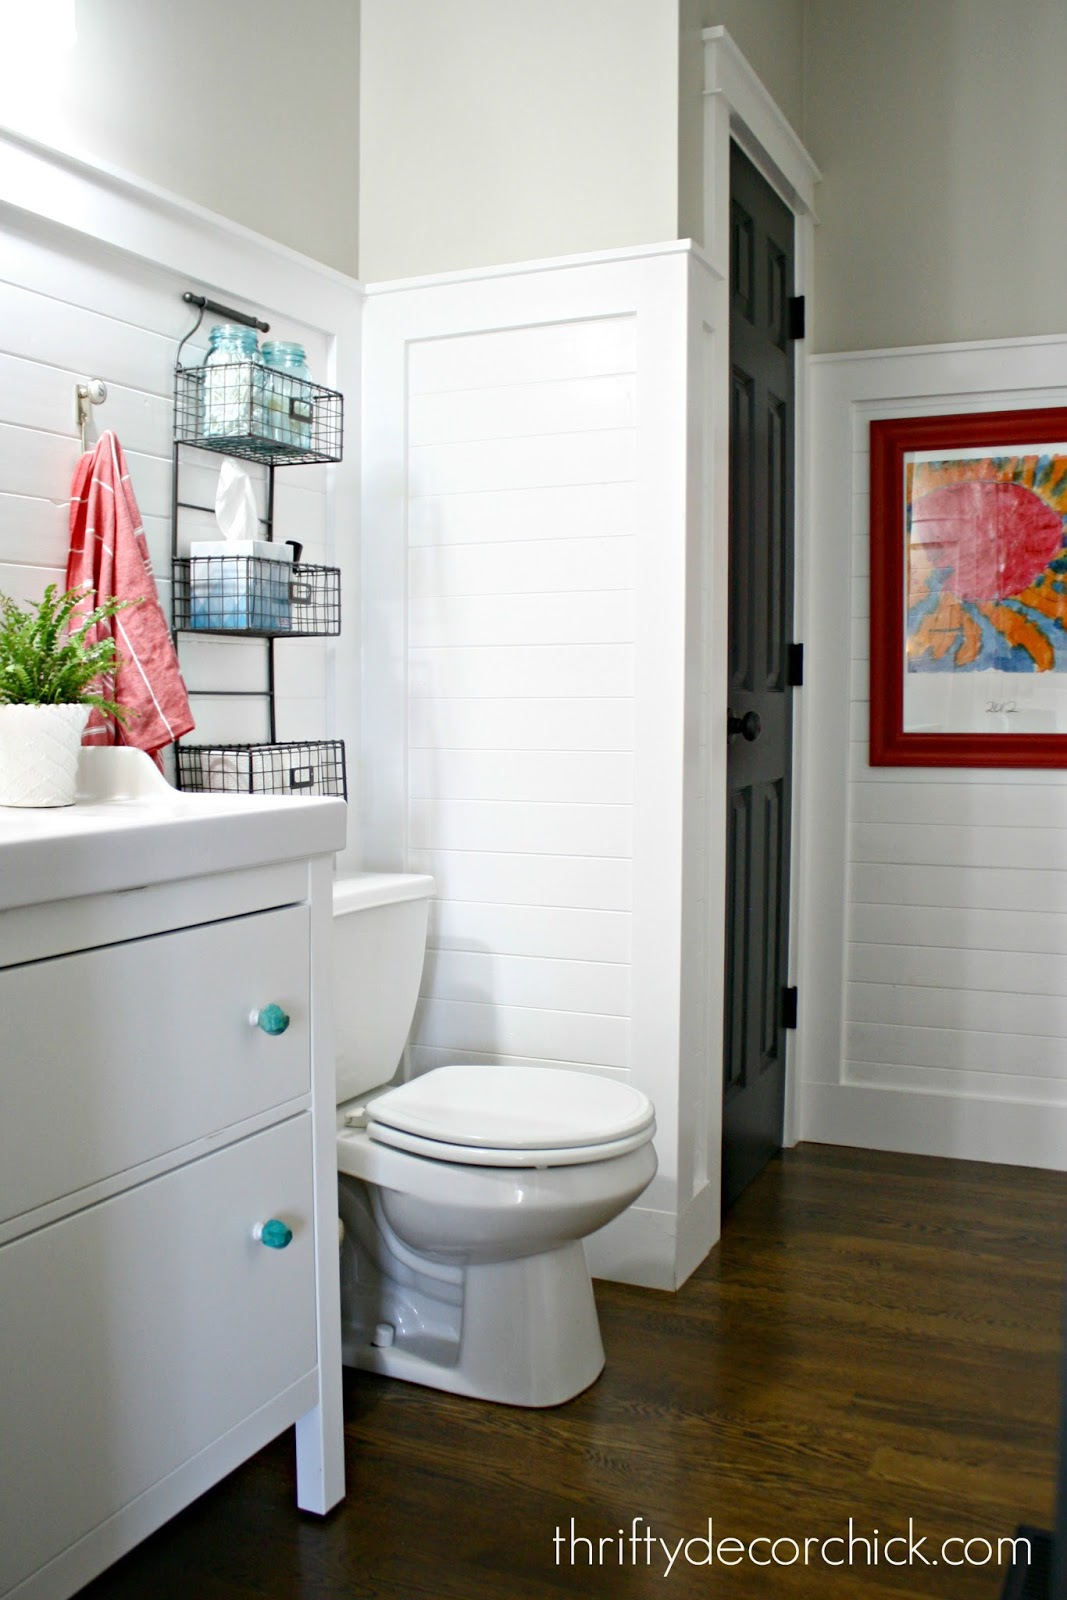 Molding Ideas Five Tutorials For Pretty Wall Trim From Thrifty Decor Chick